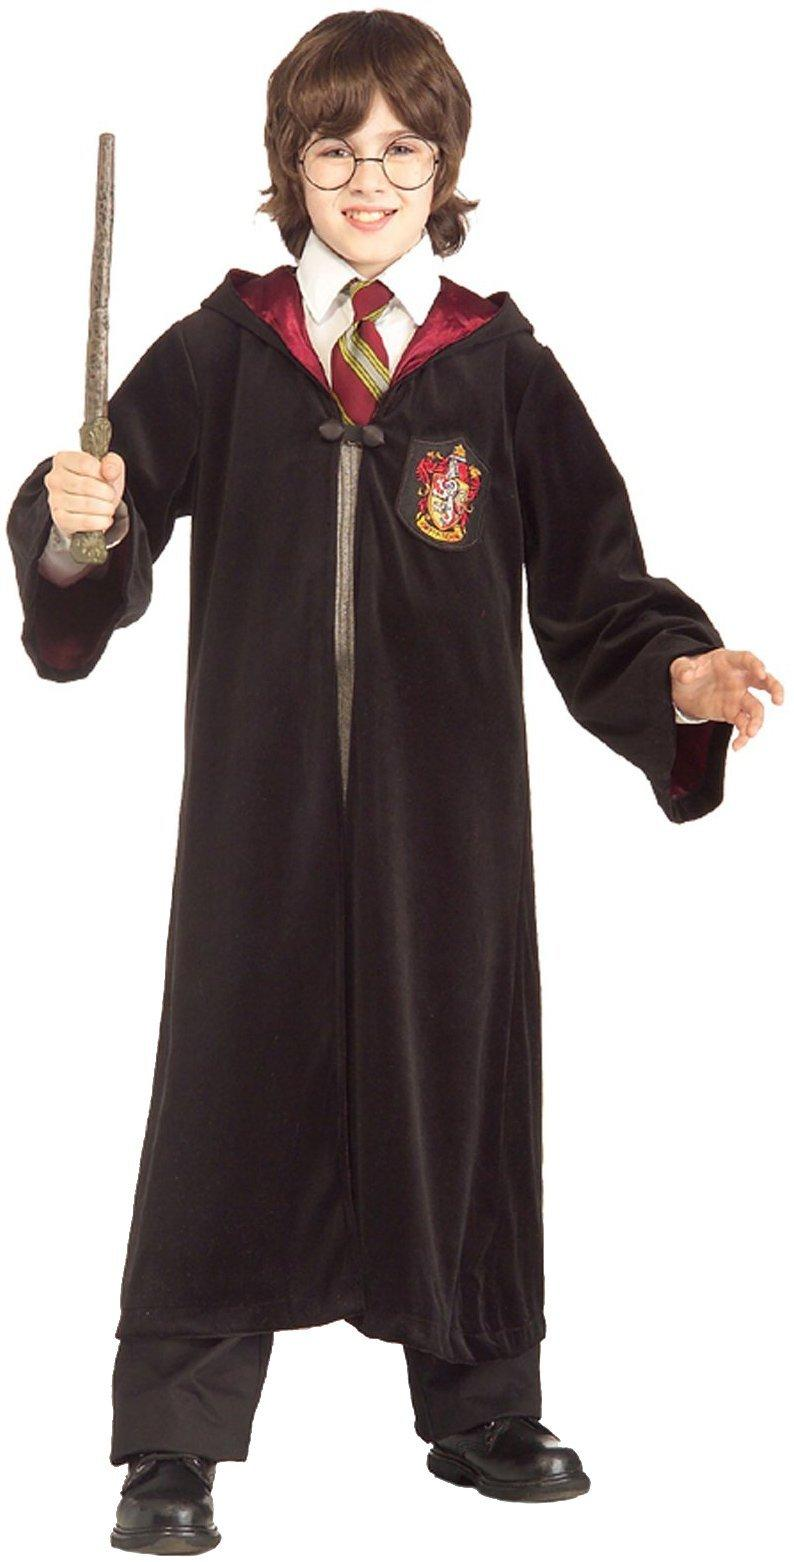 Harry Potter Premium Gryffindor Robe Child Costume by Rubies Costumes